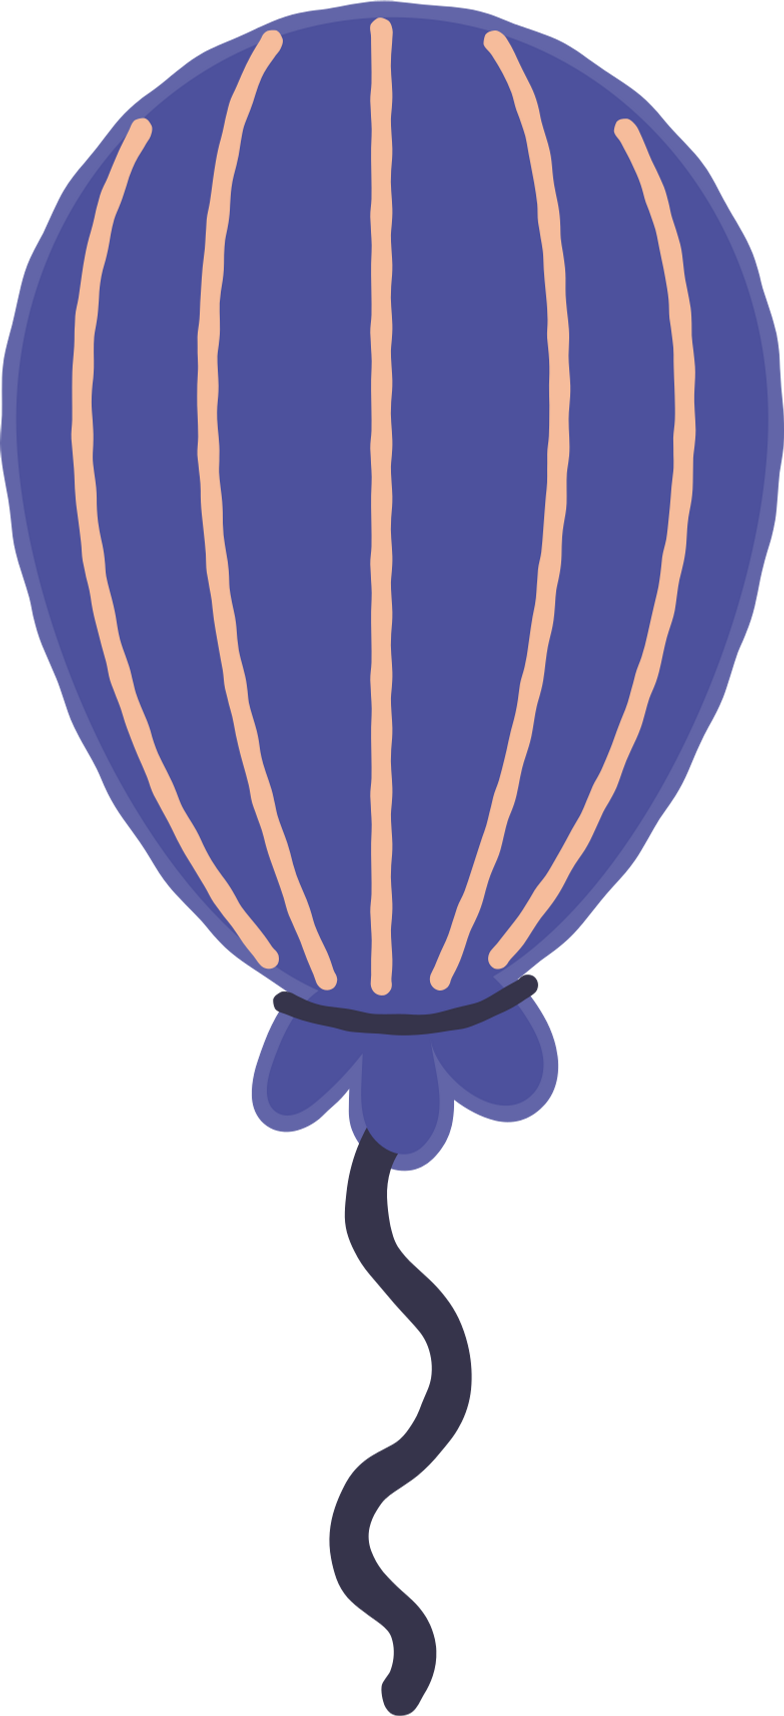 baloon Clipart illustration in PNG, SVG